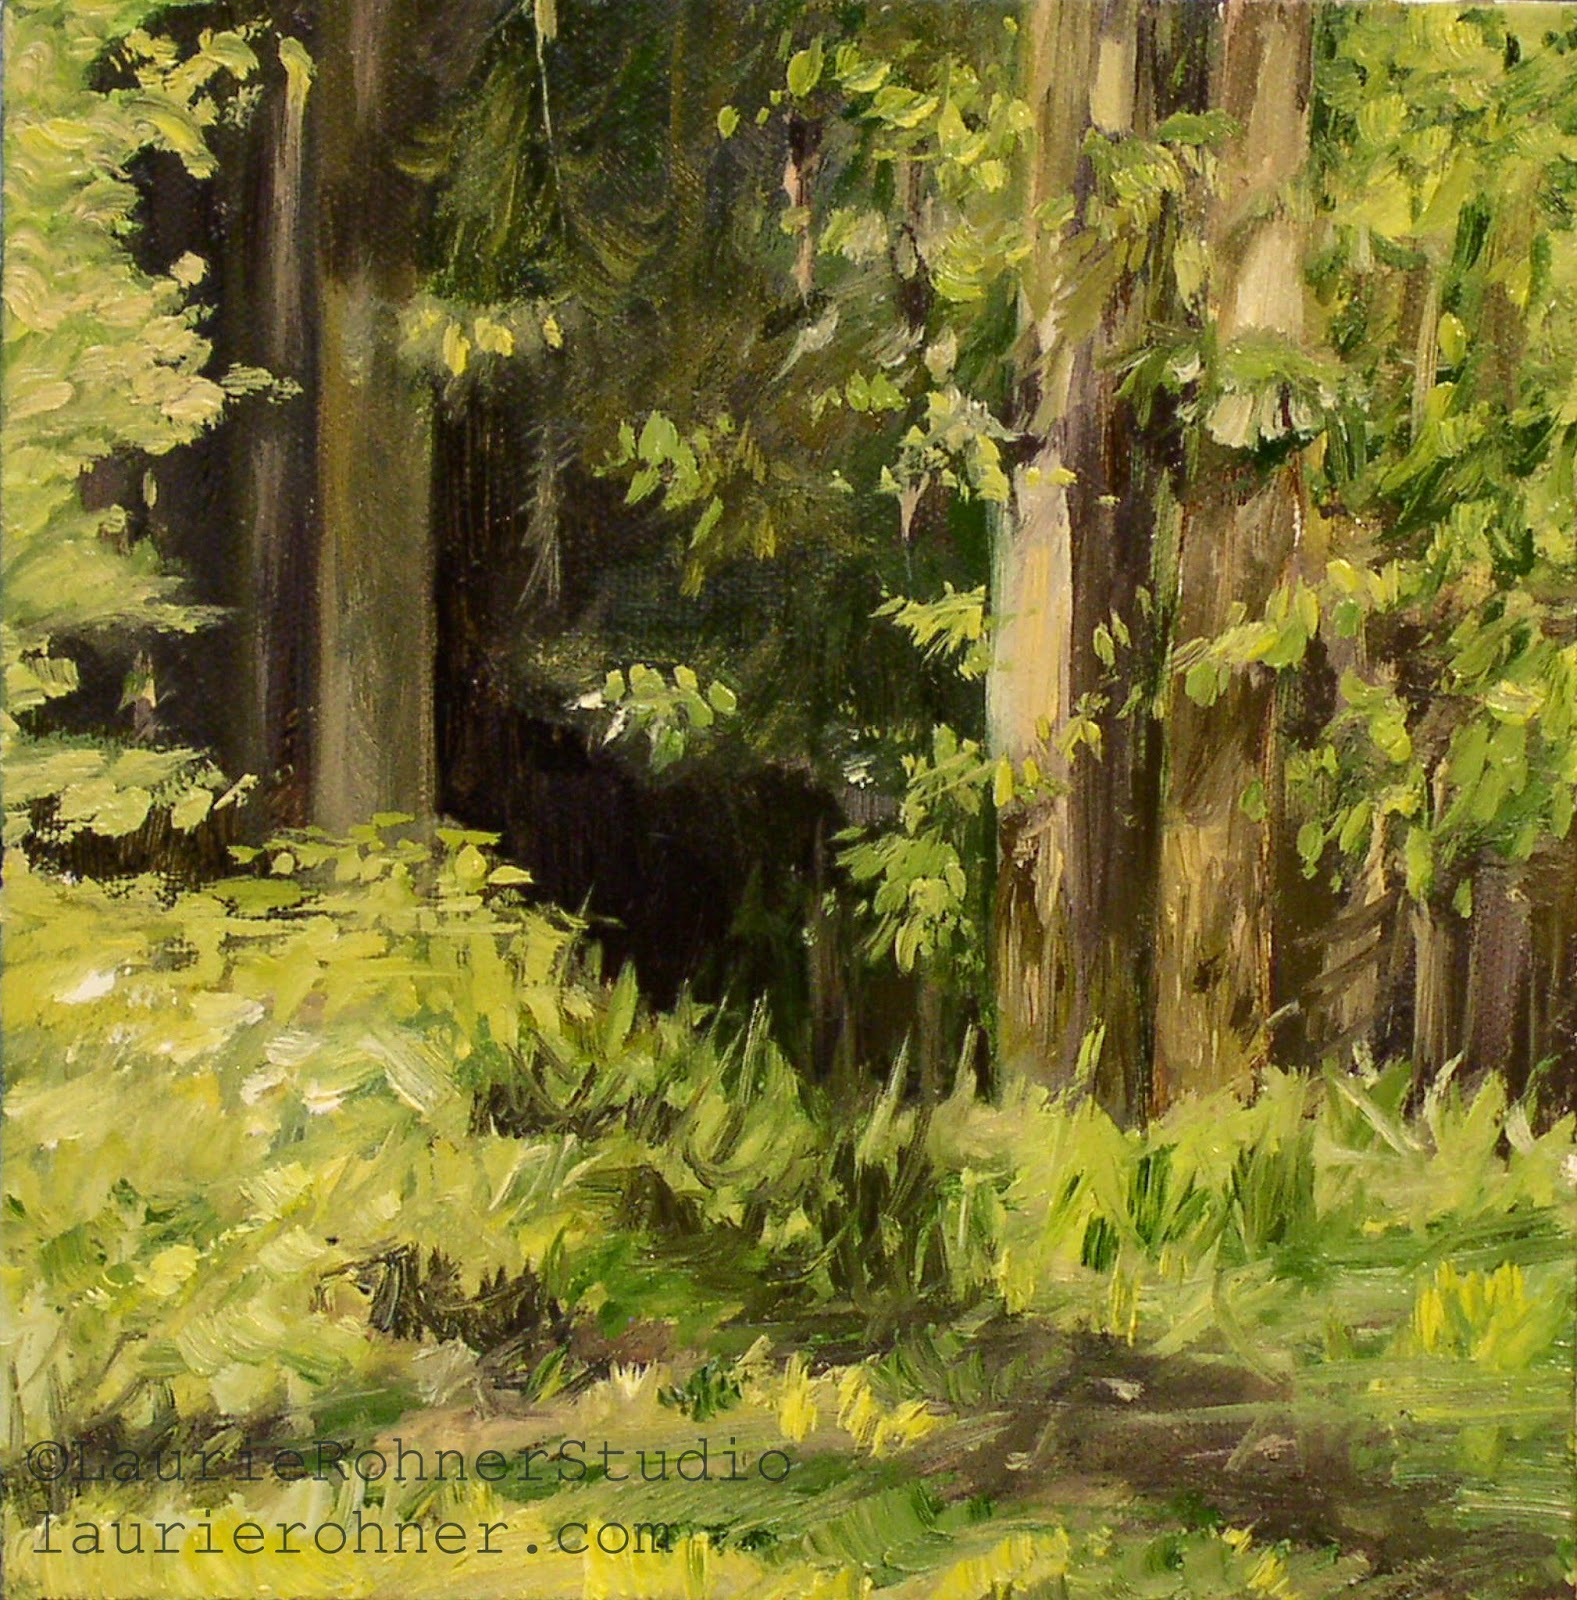 LAURIE ROHNER STUDIO WOODLAND FOREST LANDSCAPE OIL PAINTING FAIRY